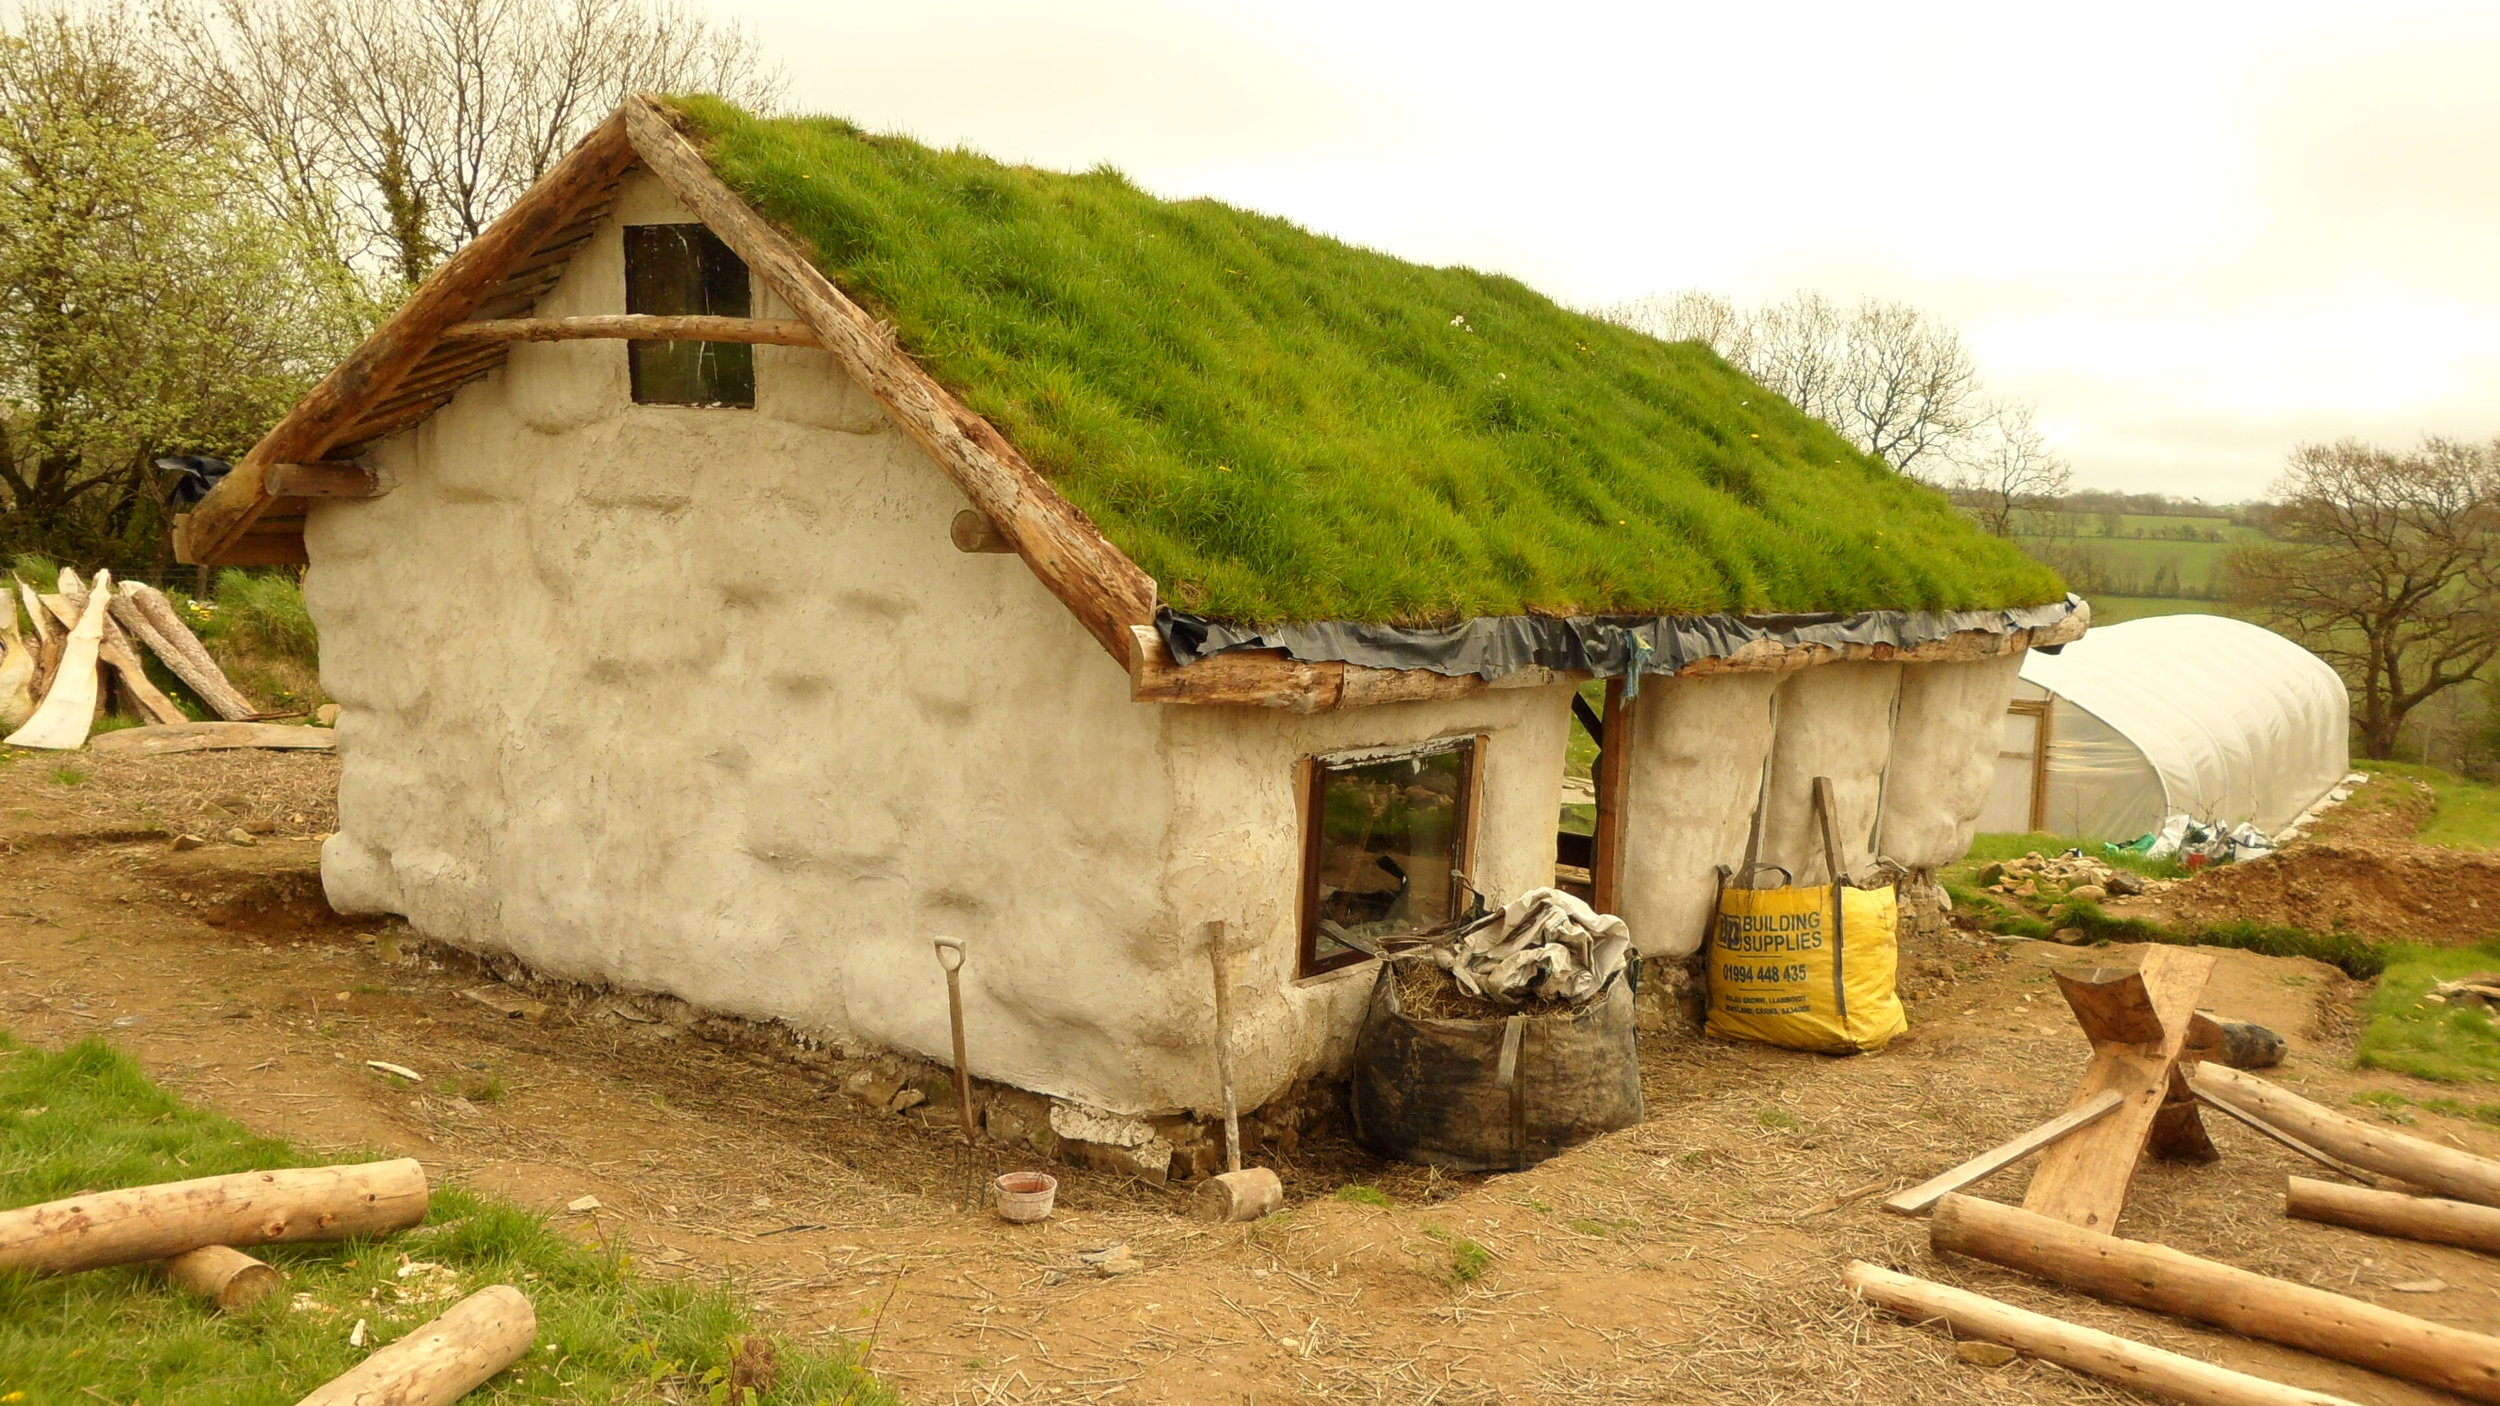 A spot of inspiration from a visit to Lammas in Wales in 2011